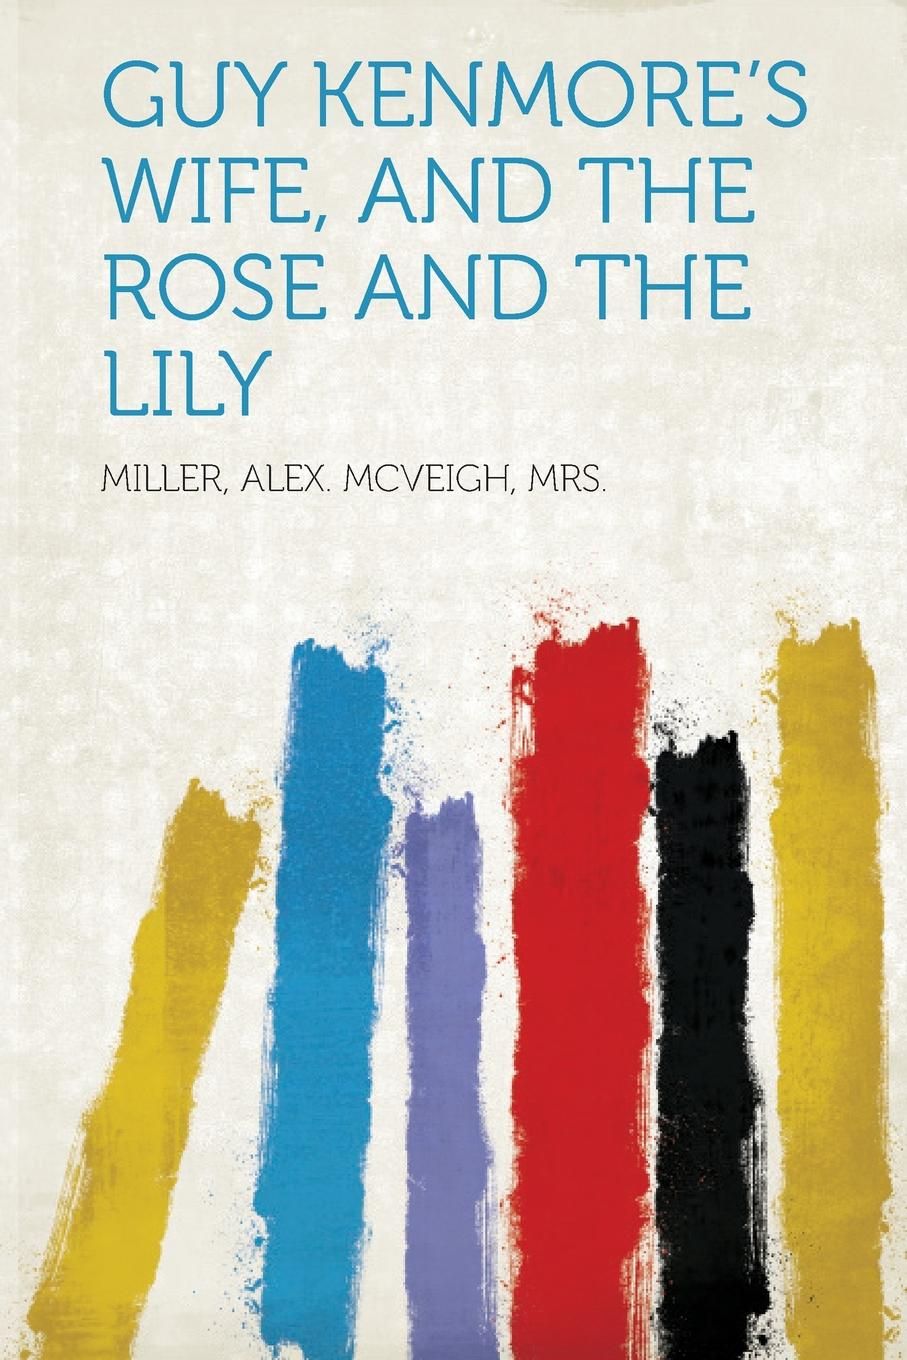 Guy Kenmore.s Wife, and The Rose and the Lily